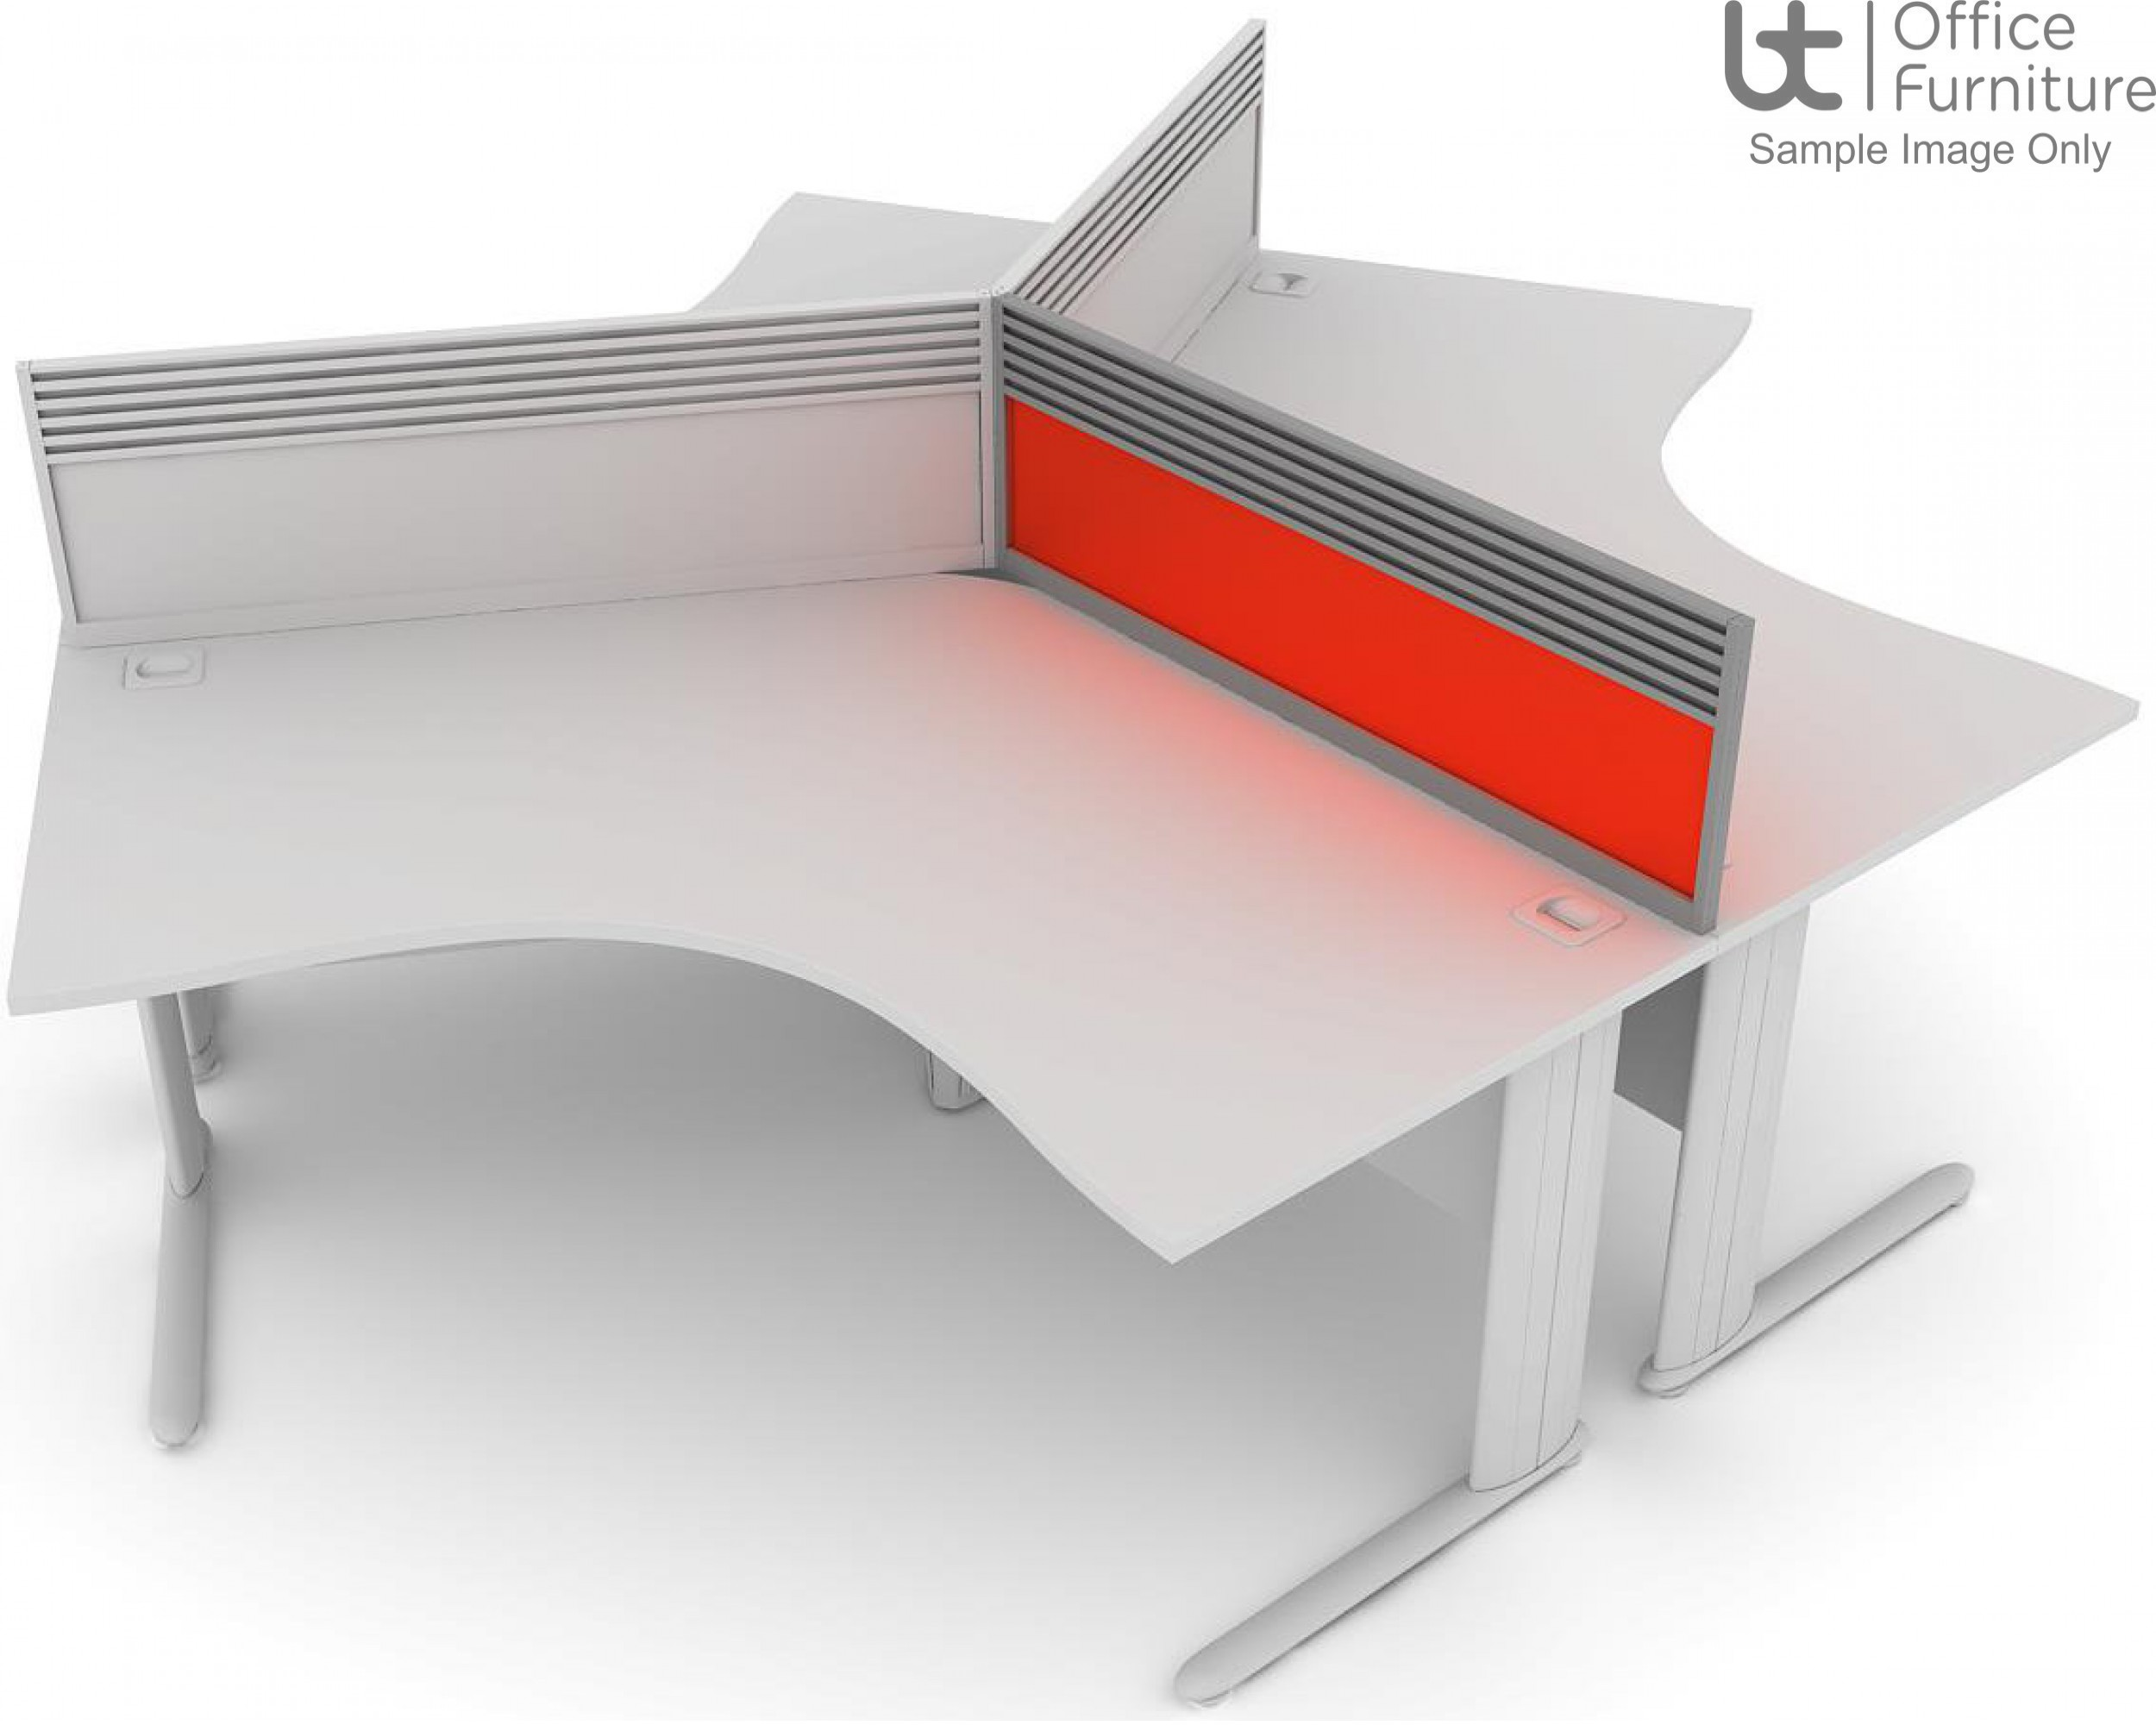 Elite System Screen 120 Degree with Management Rail - Acrylic